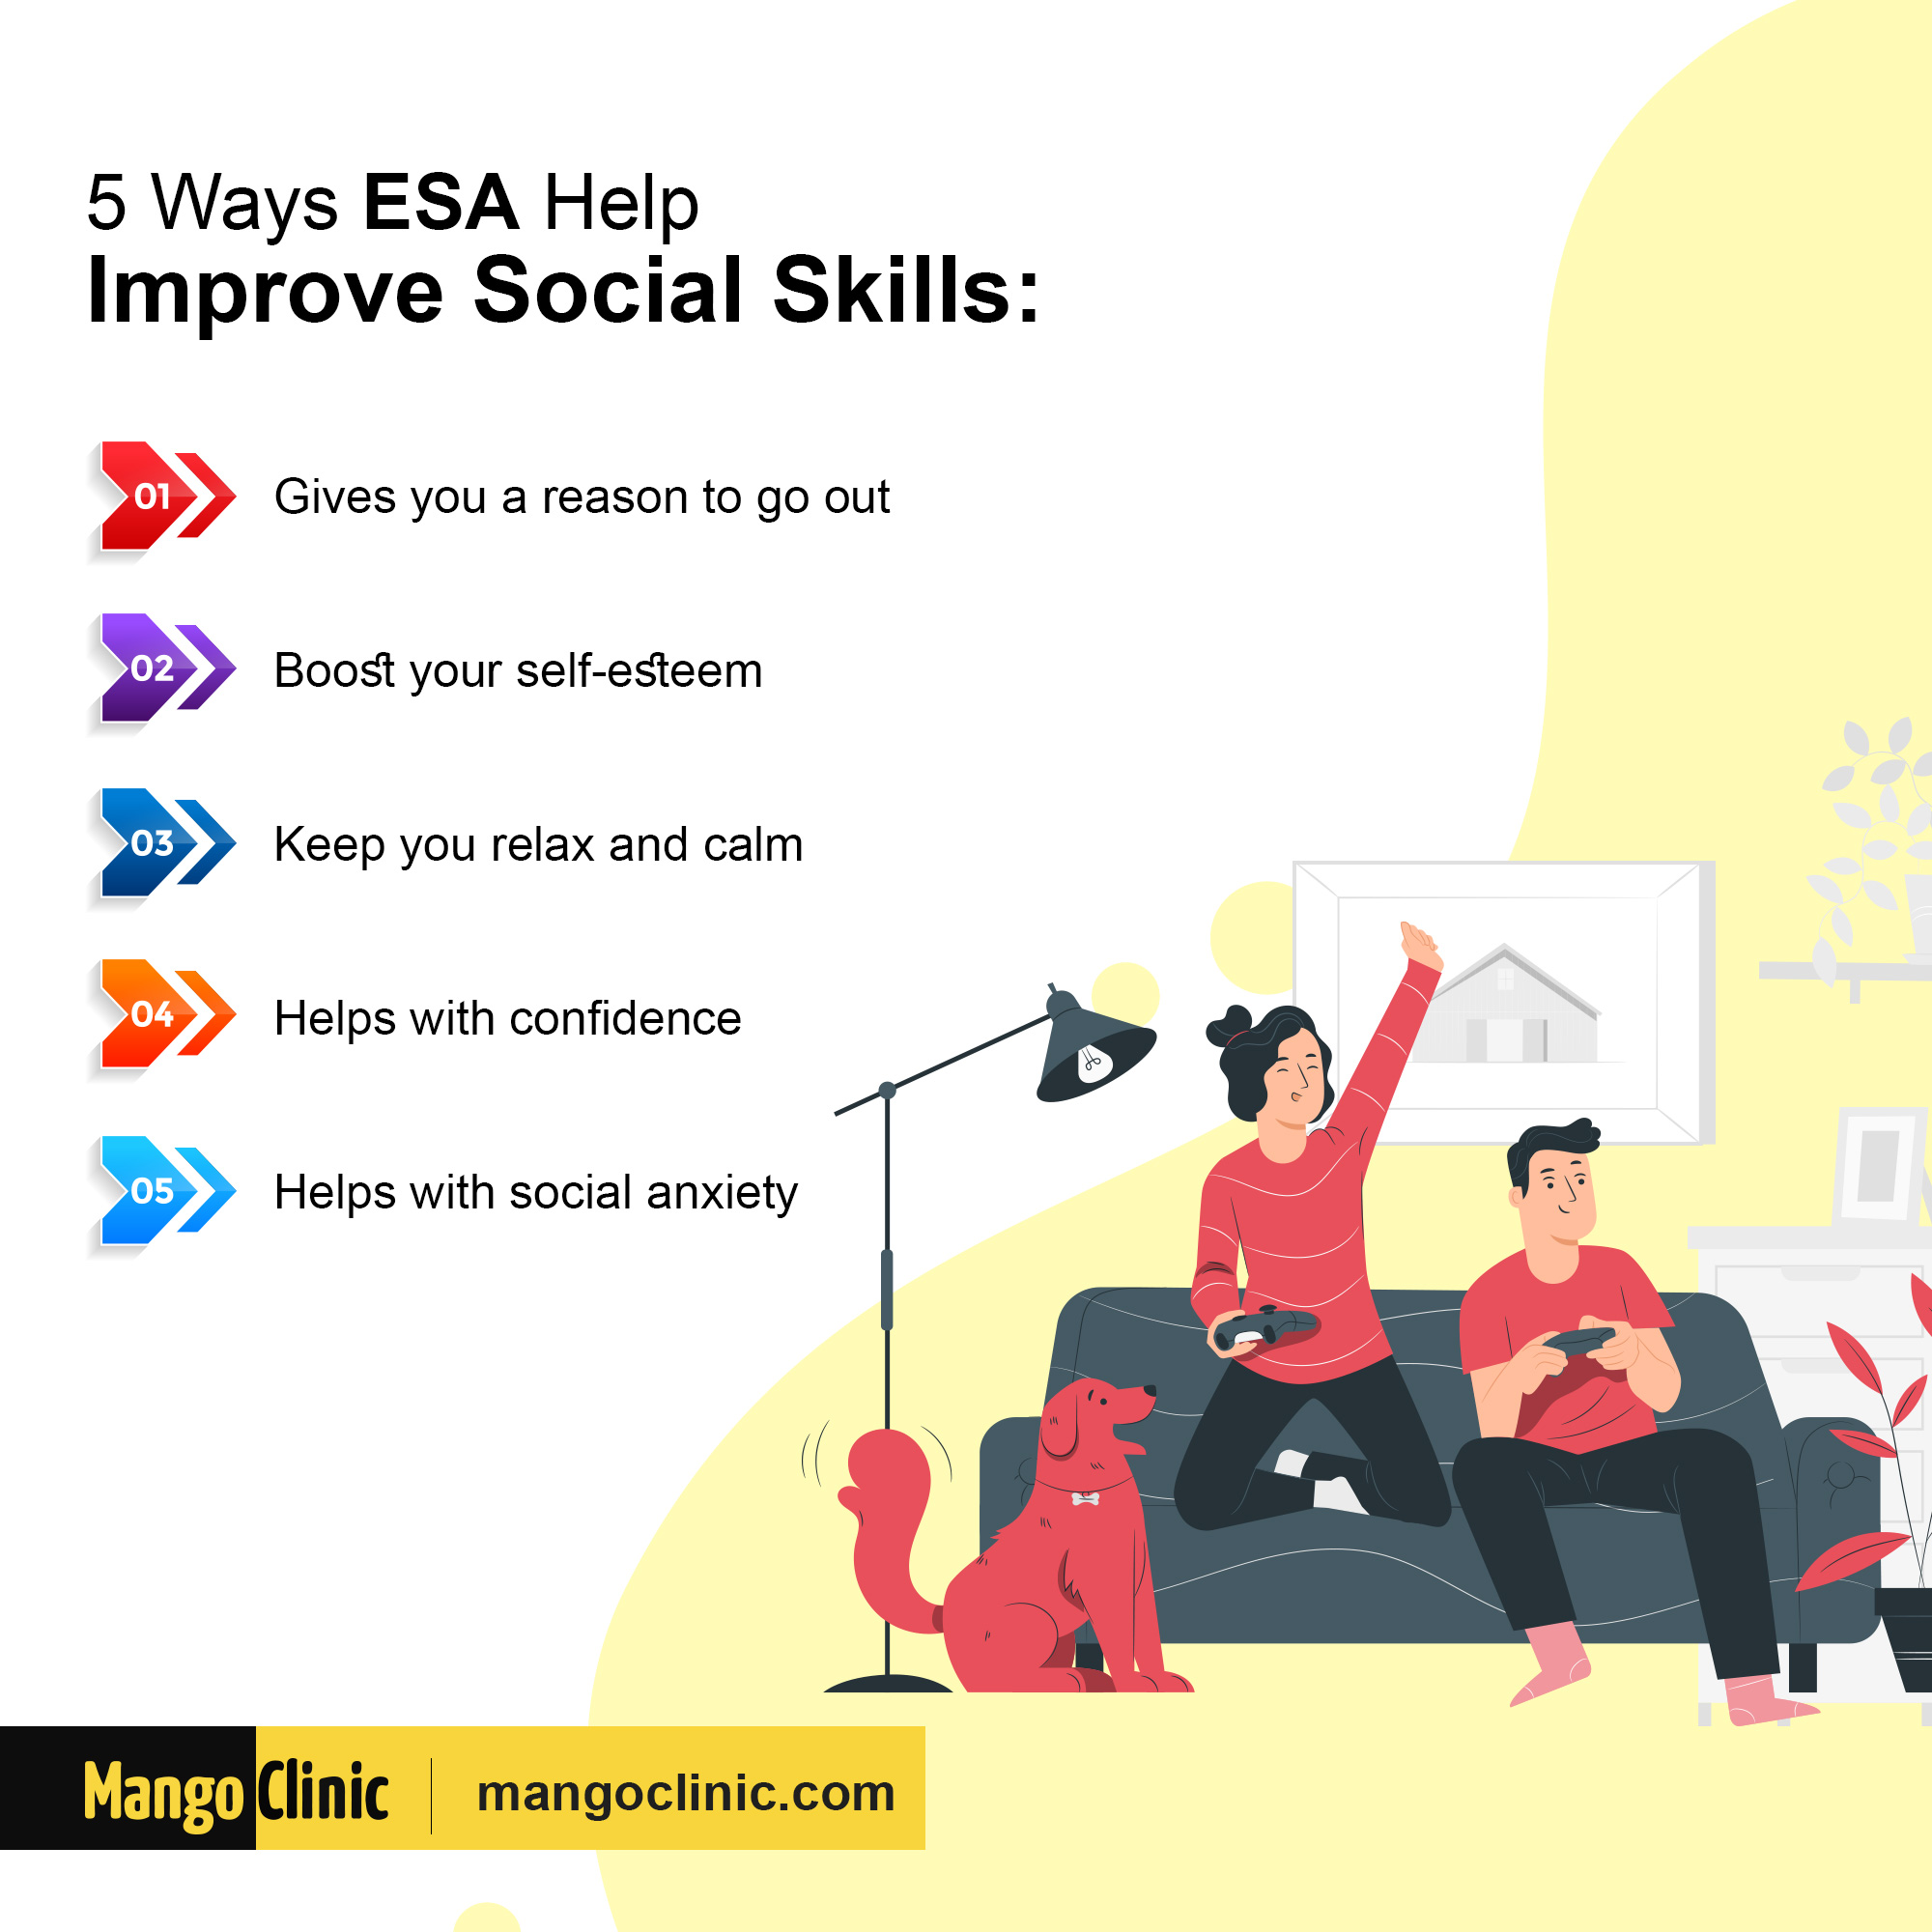 How ESA help improve social skills